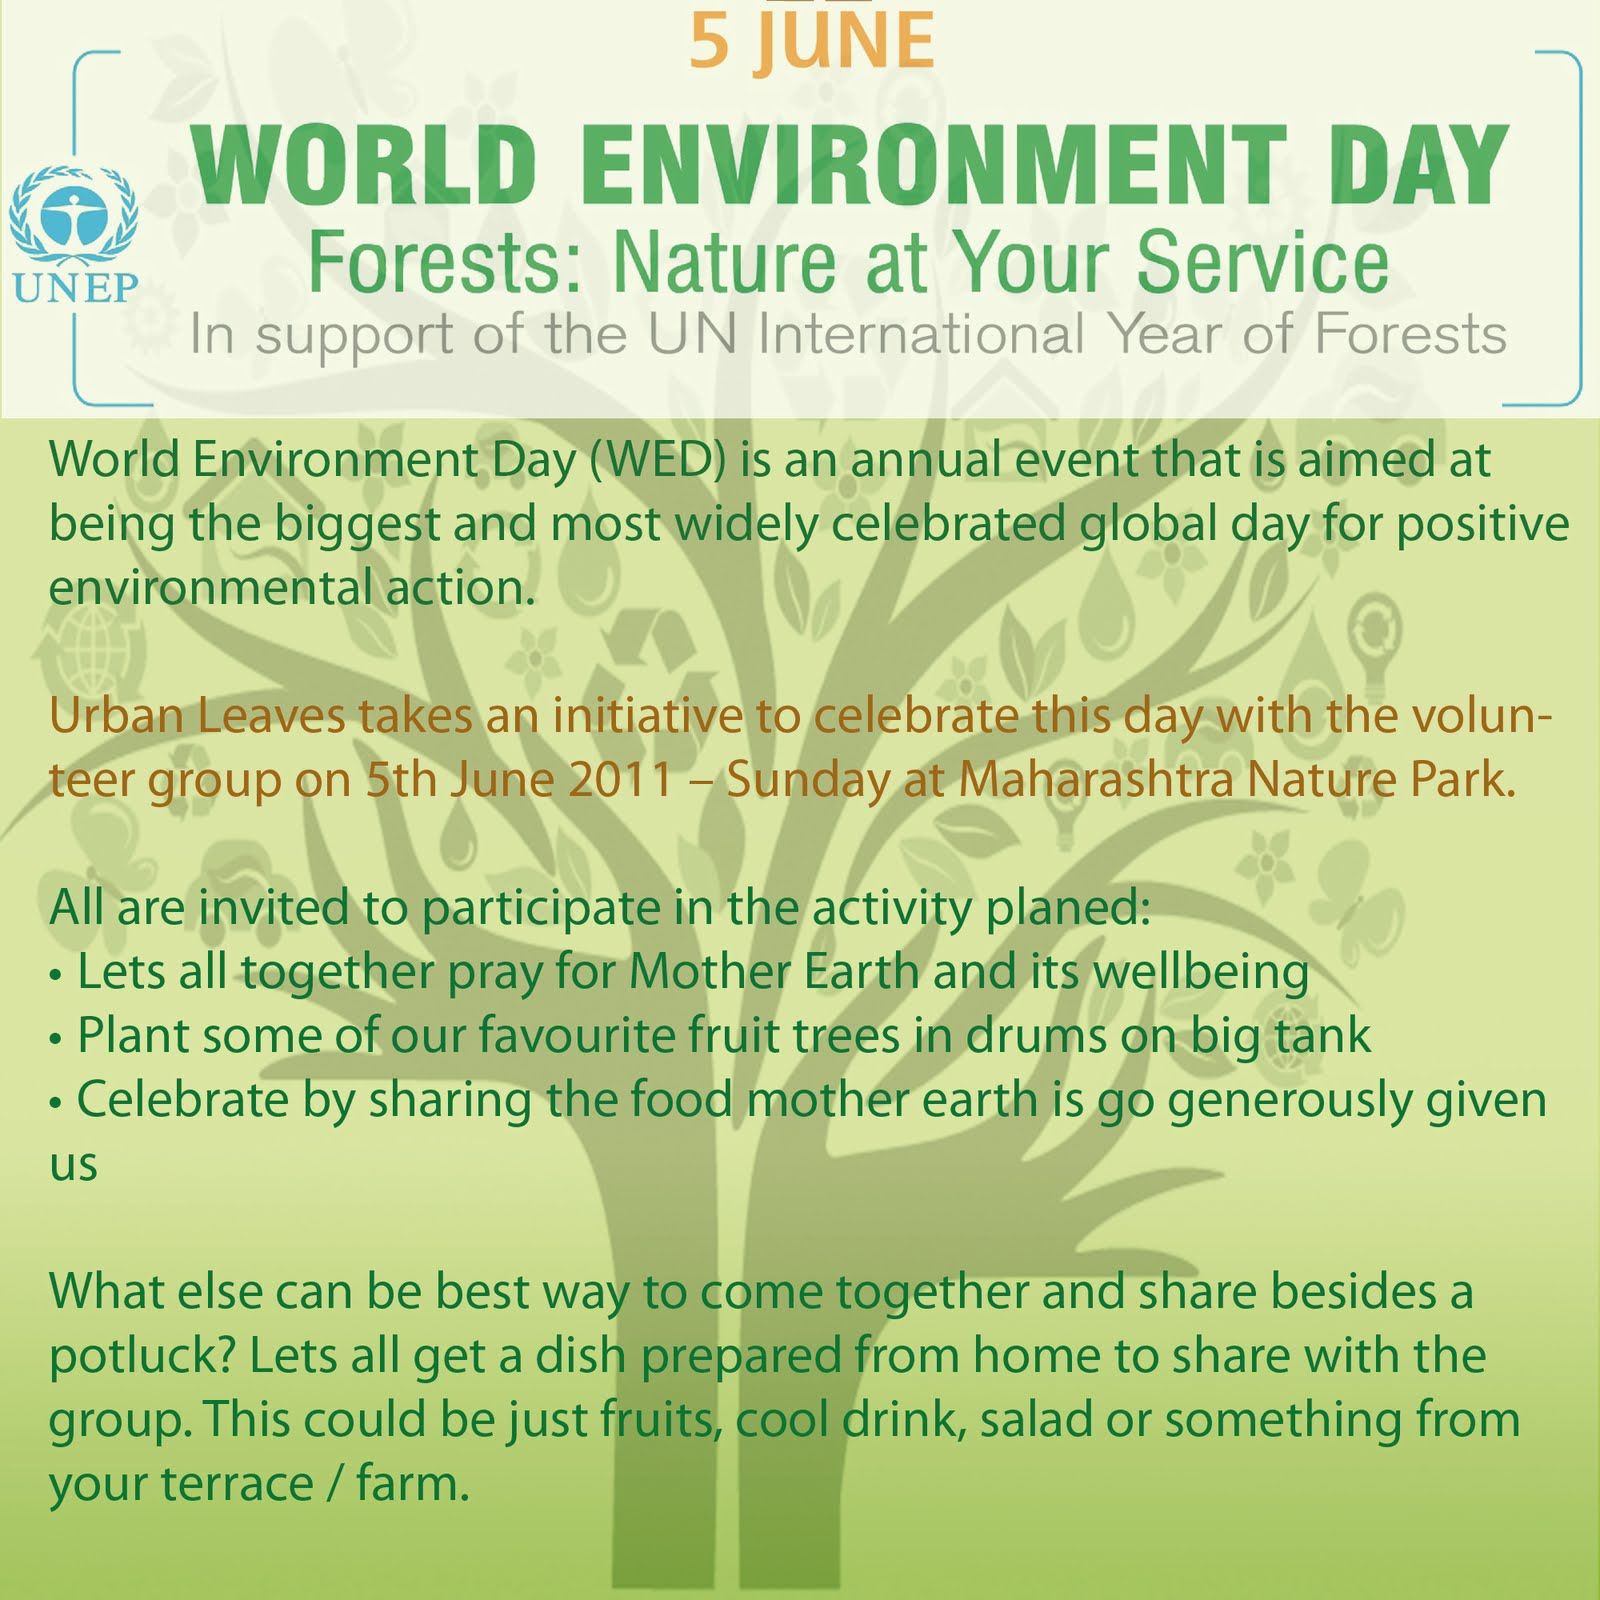 Health Awareness Essay Urban Leaves Celebrates World Environment Day On Th June  At Mnp Proposal Argument Essay Examples also Proposal Essay Topics Examples Urban Leaves India Urban Leaves Celebrates World Environment Day On  Essay Thesis Statement Examples